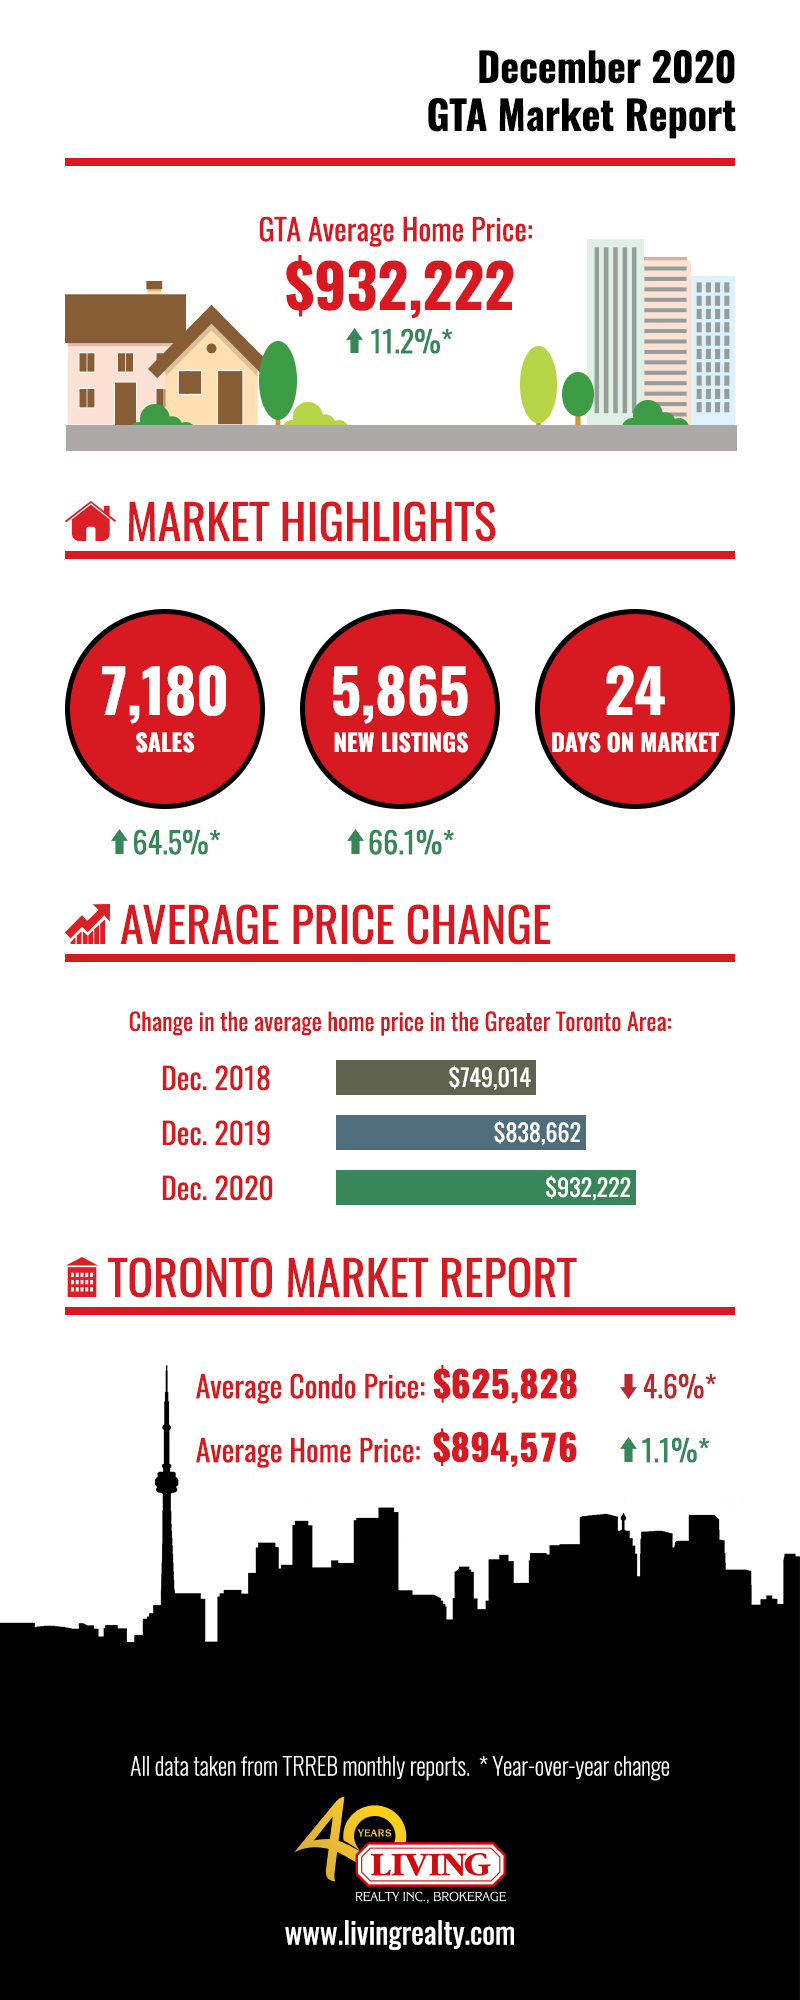 December 2020 housing market report for Toronto and GTA